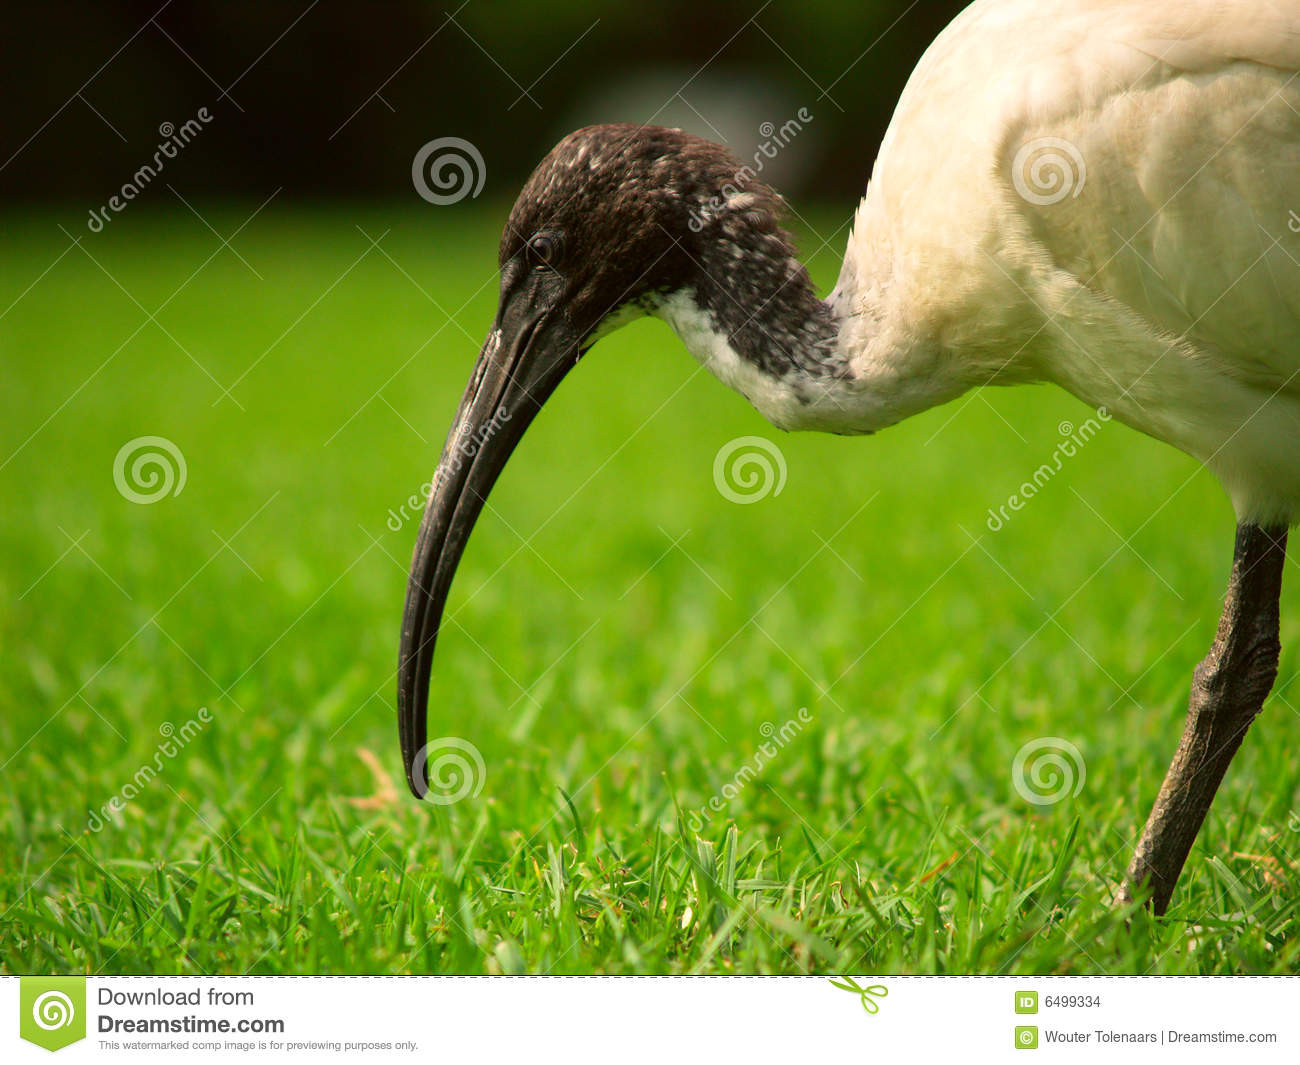 A Sacred Ibis in a park